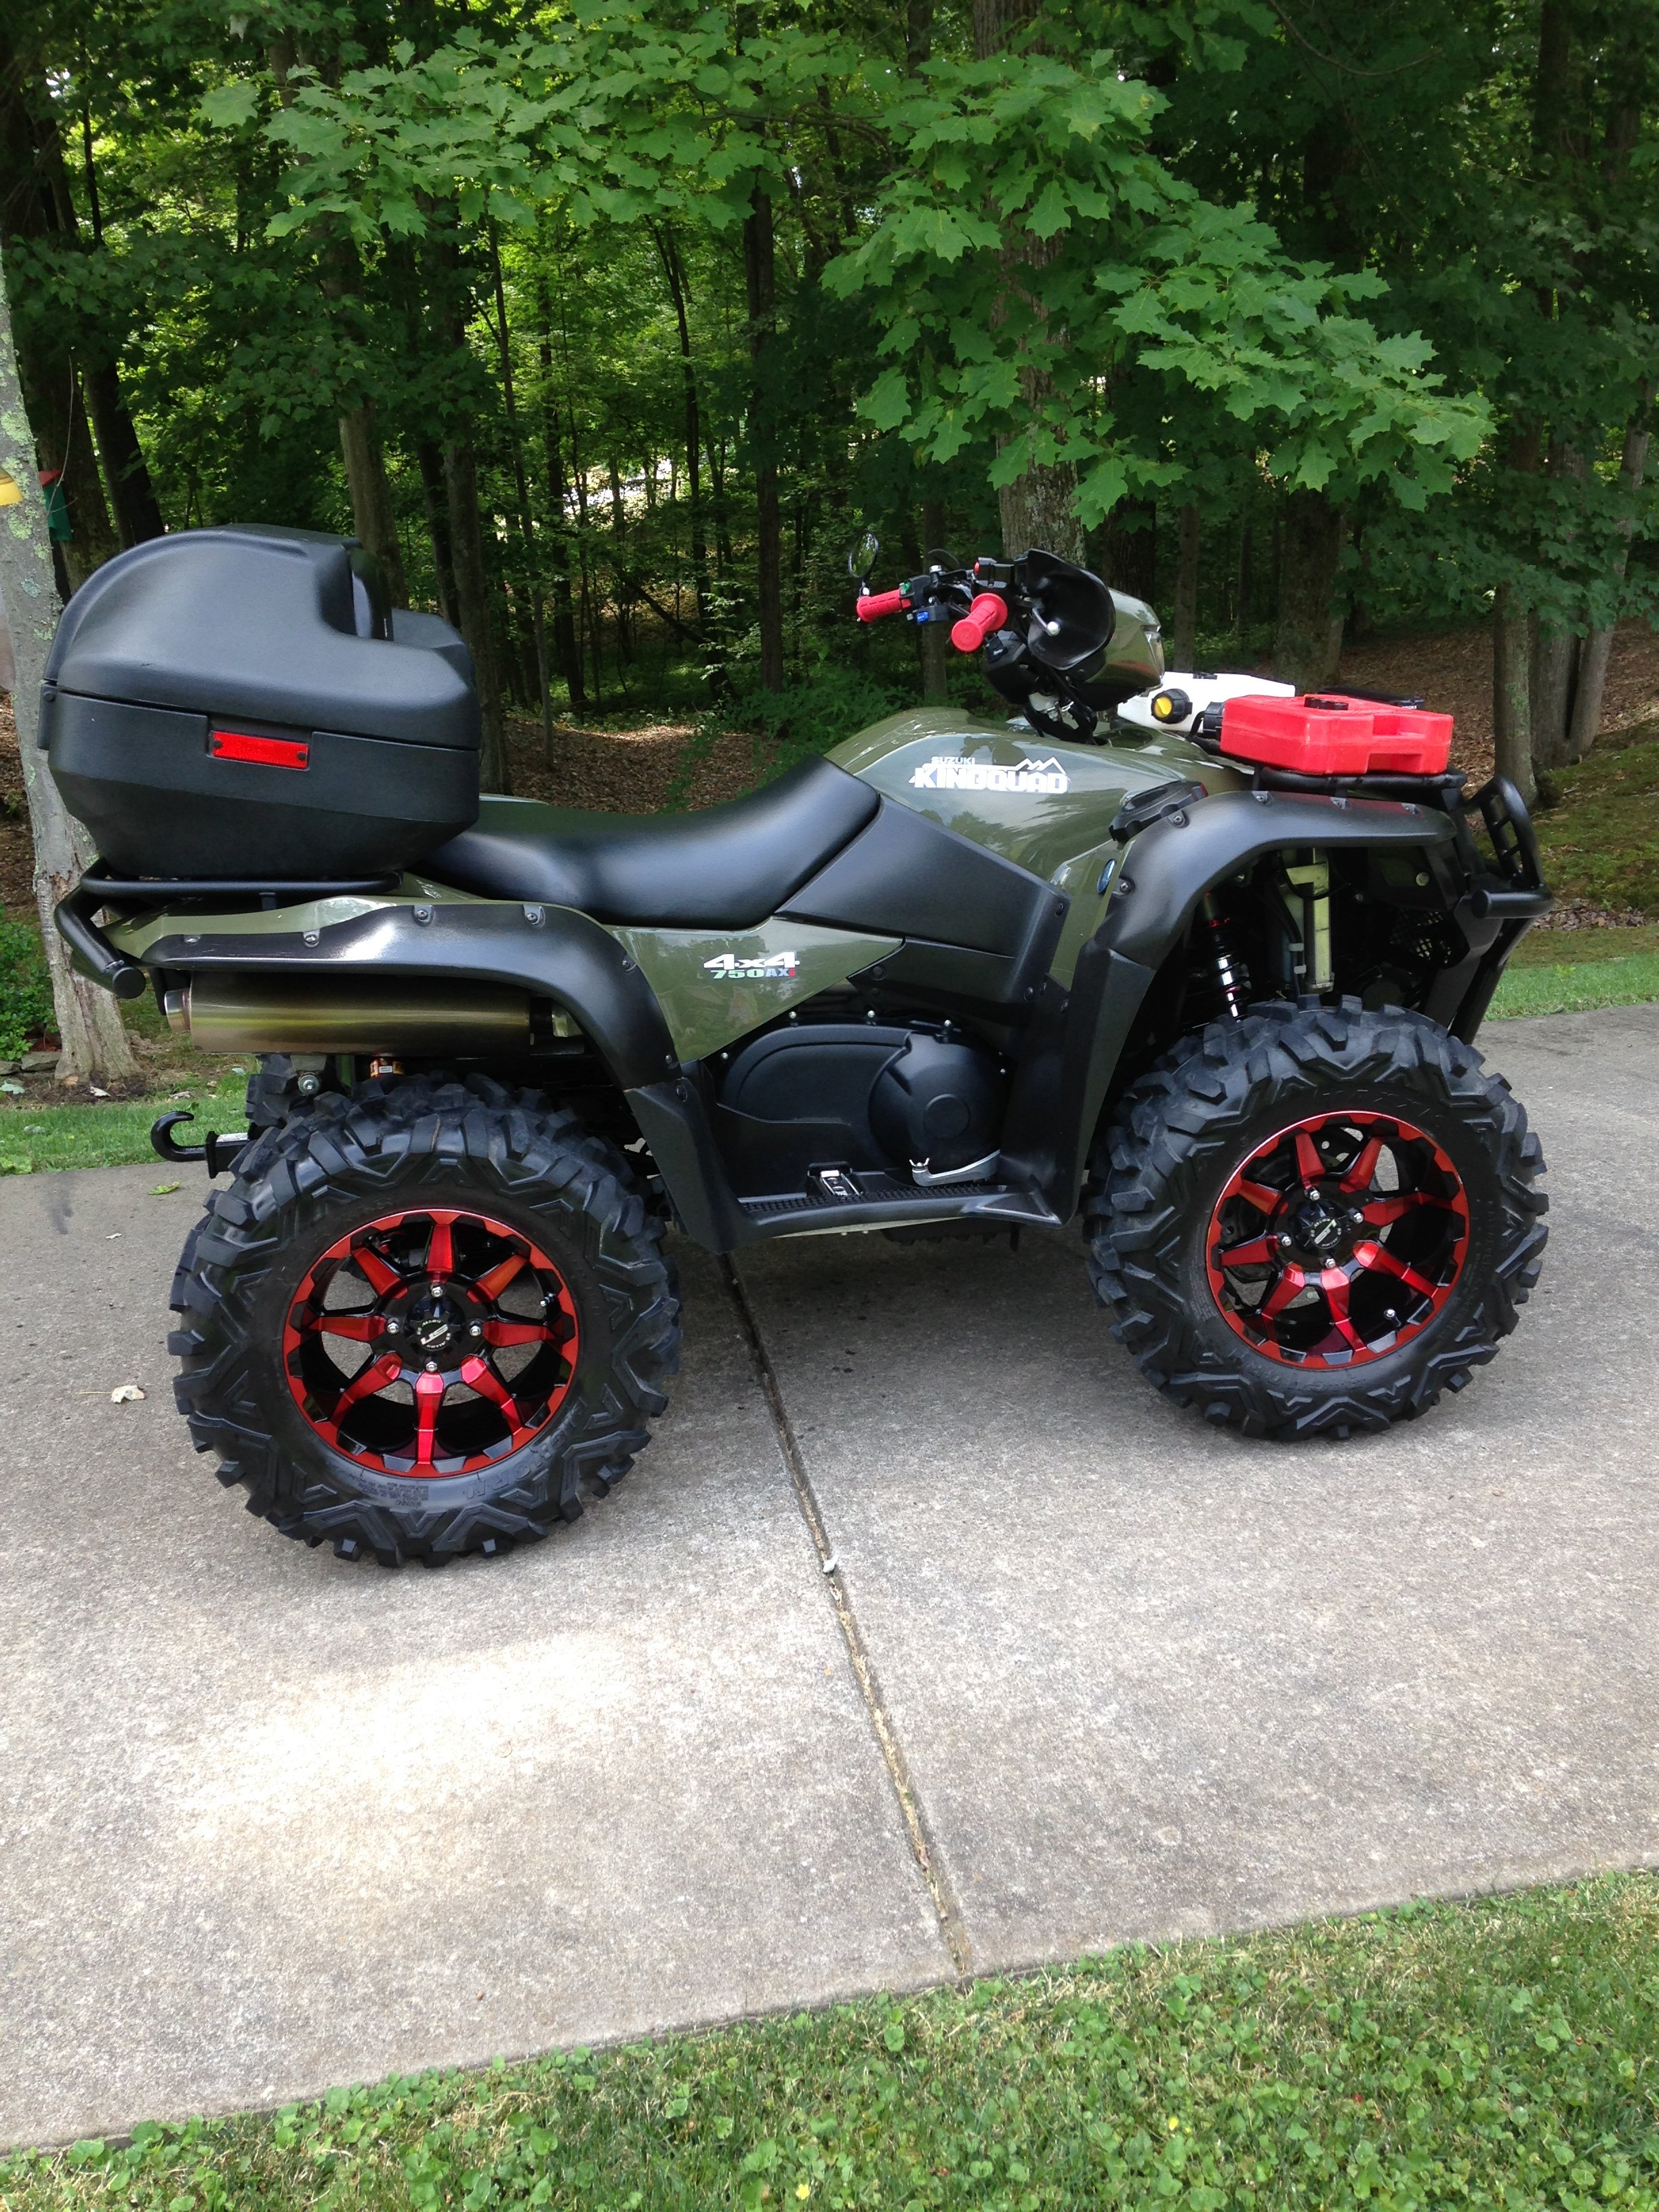 2014 king quad 750 irs Powersteering - Suzuki ATV Forum